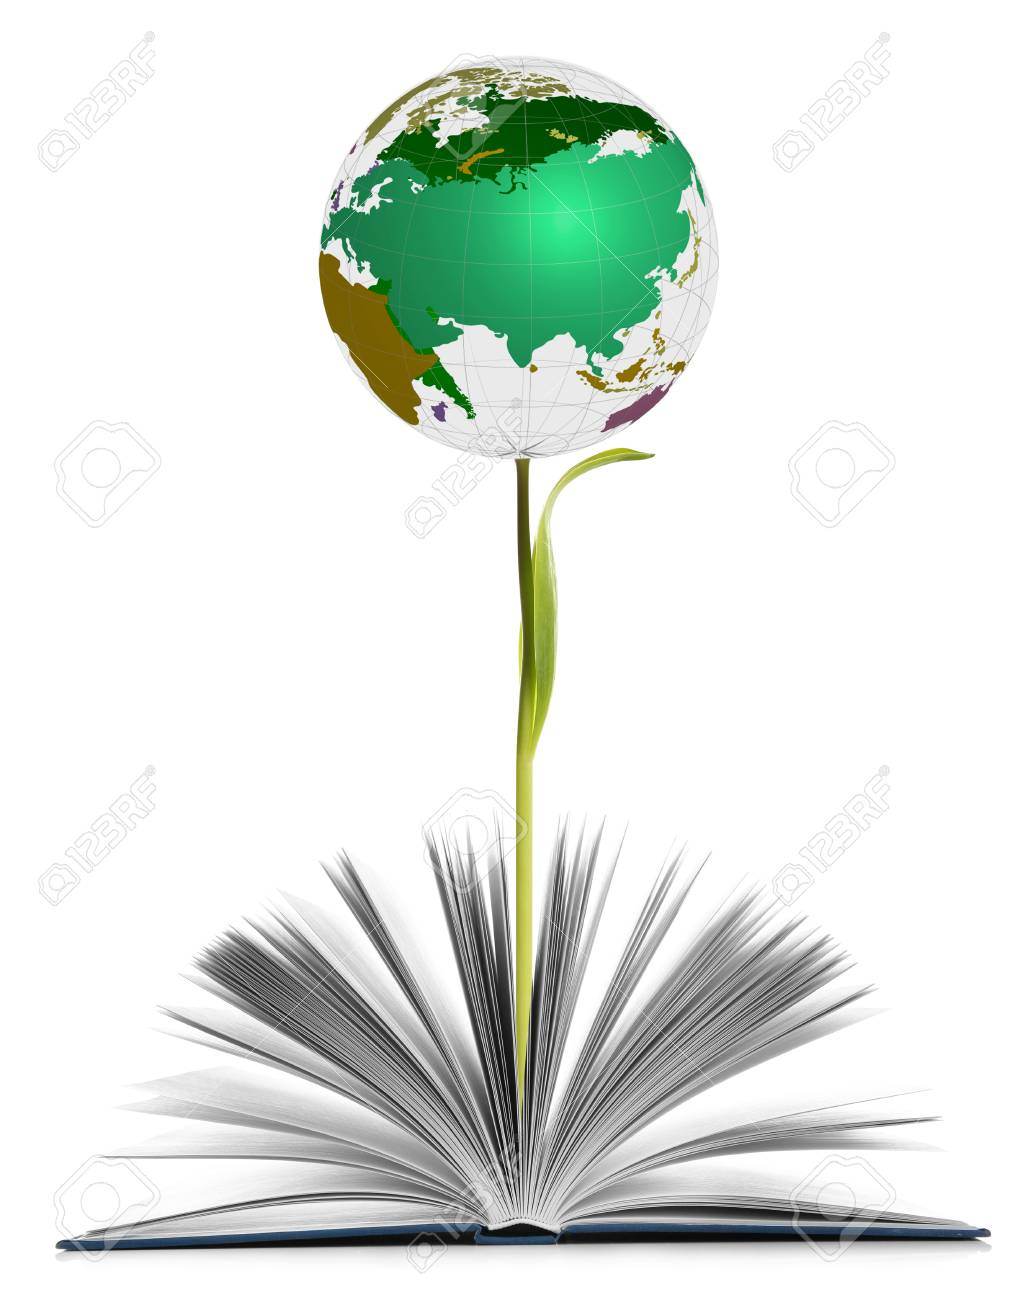 2c37dec242540 Globe growing out of book as flower on white background. World literature  concept Stock Photo